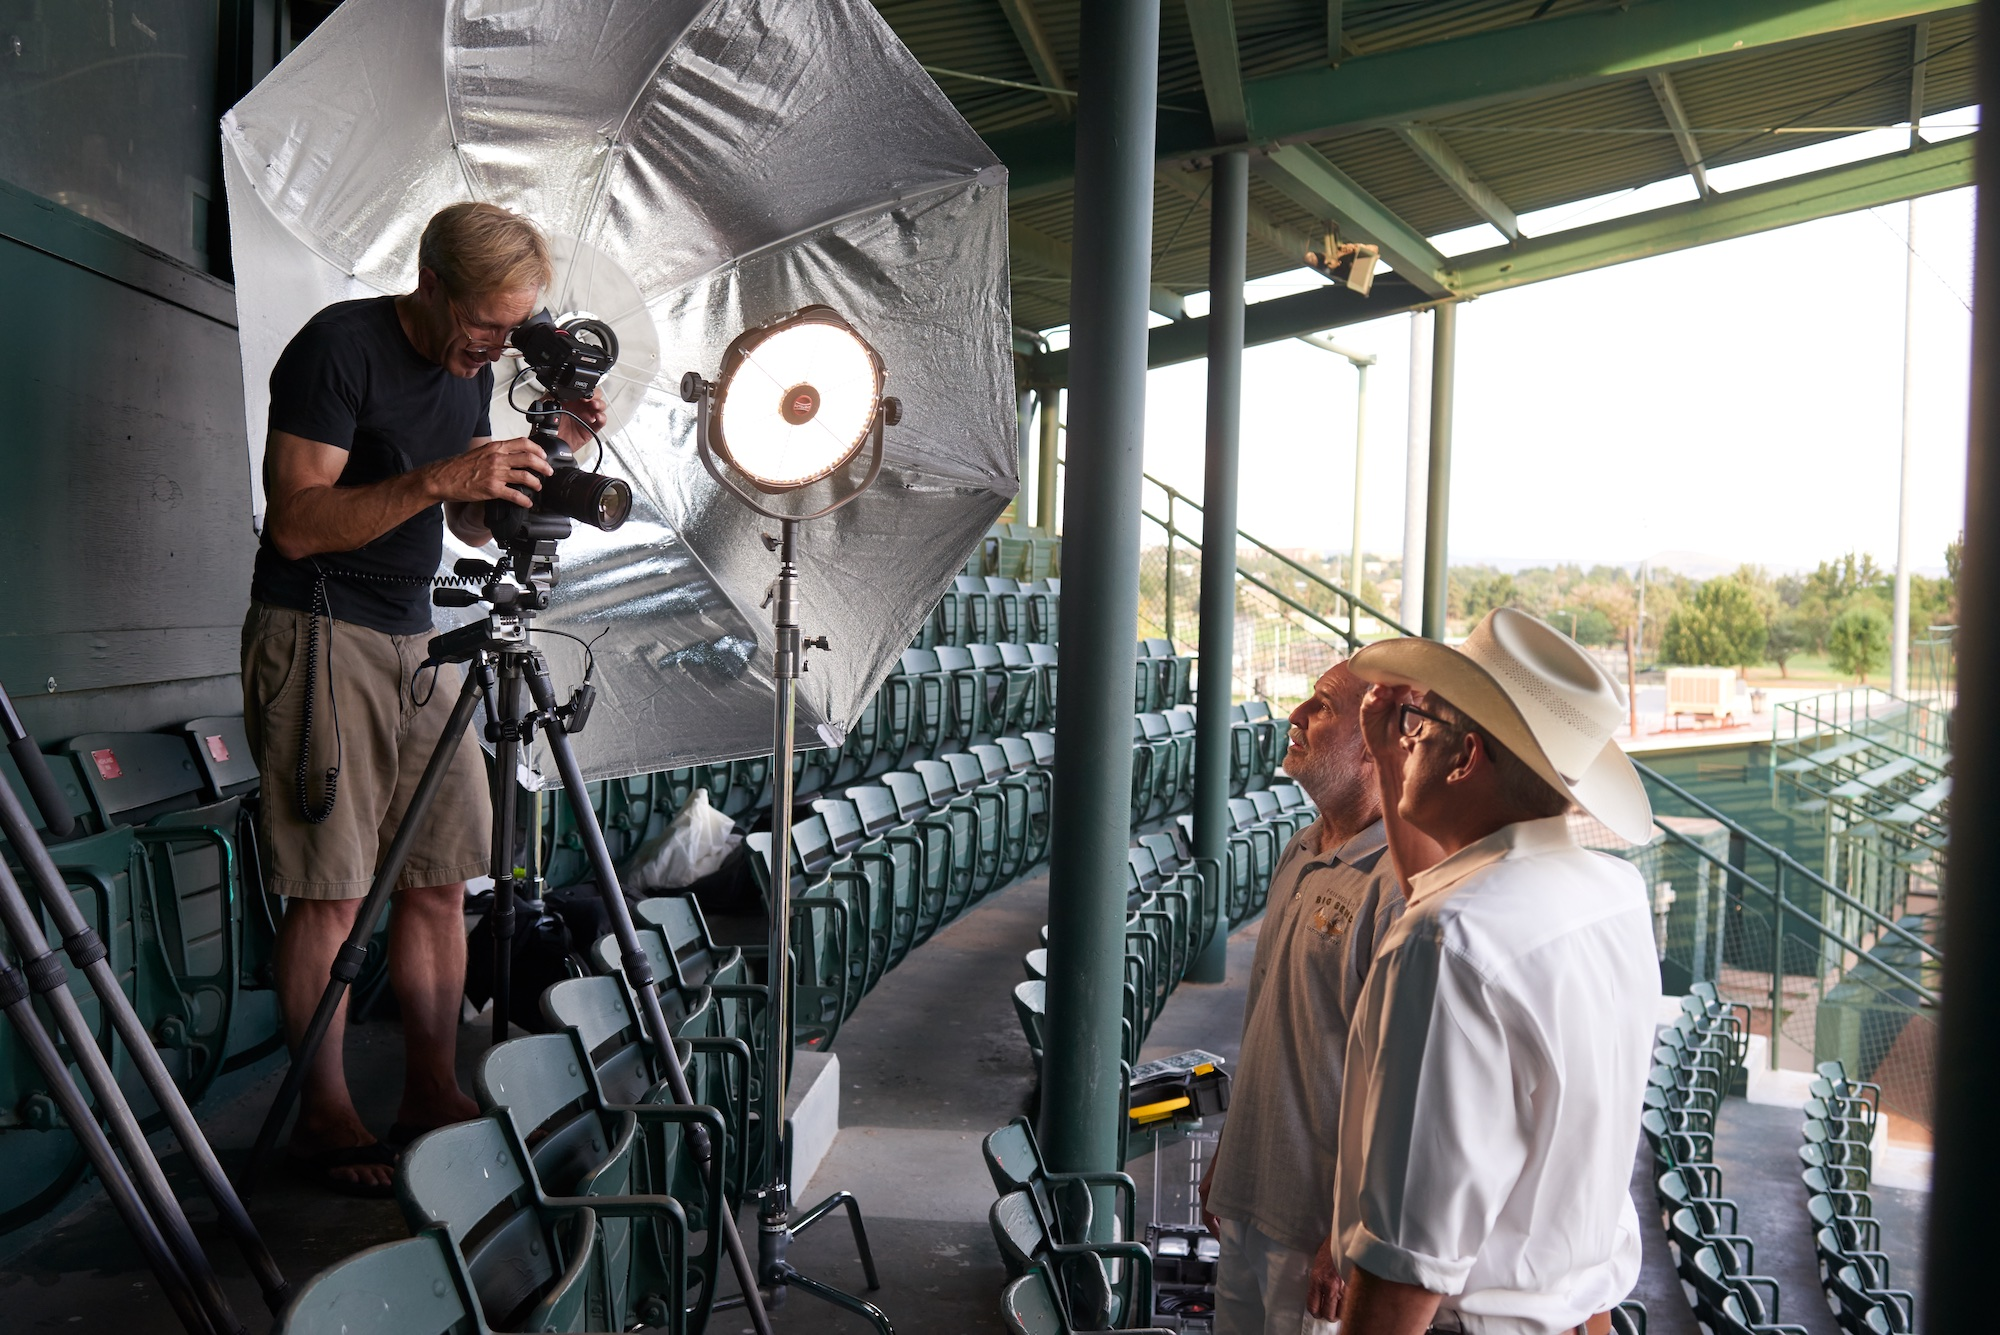 John behind the camera with DJ and Mike McShane just before filming of DJ's interview at Kokernot Field.